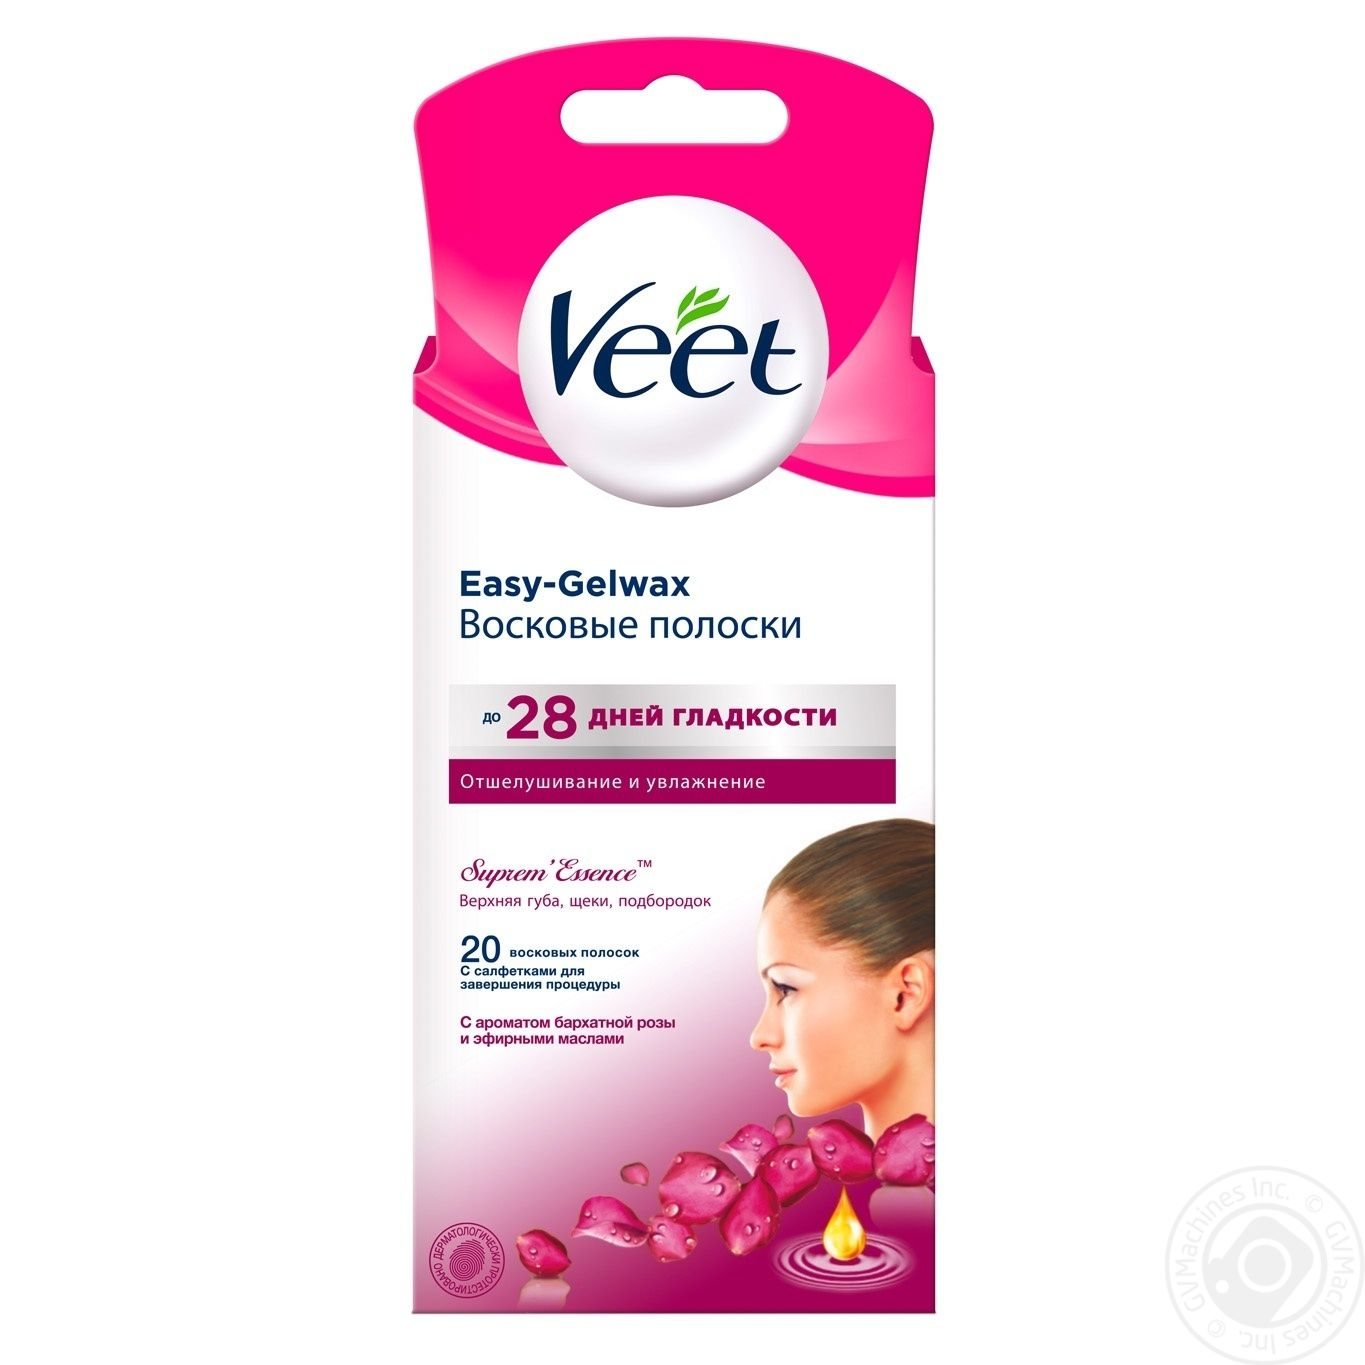 Veet Suprem Essence Face Wax Strips Hygiene For Shaving And Hair Removal For Epilation Zakaz Ua Official Online Grocery For Supermarkets In Ukraine Buy Veet Suprem Essence Face Wax Strips Delivery